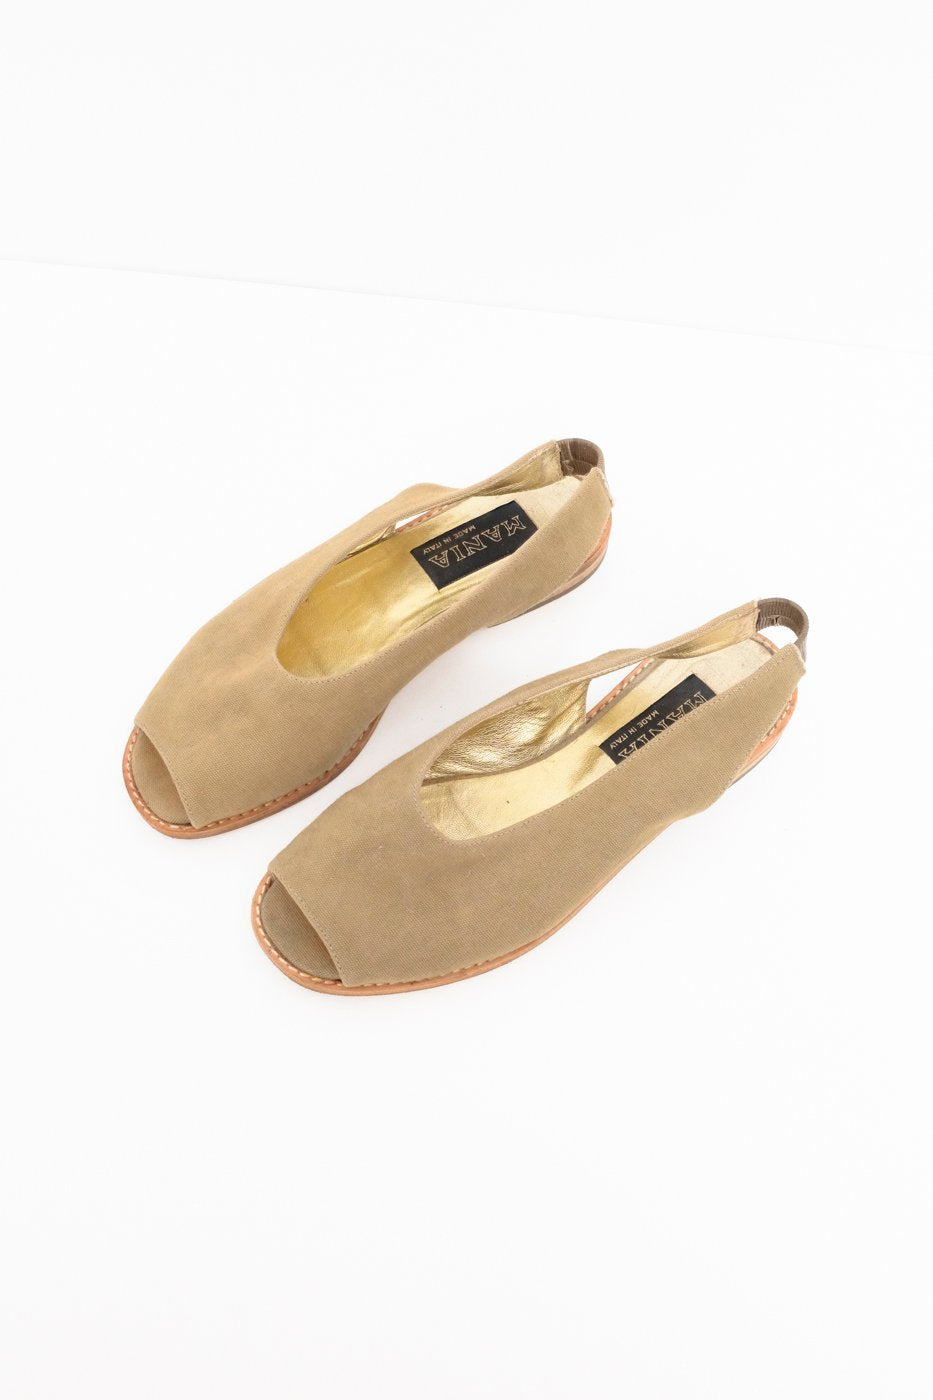 0429_NUDE LEATHER MULE SANDALS 36 SLIP ONS